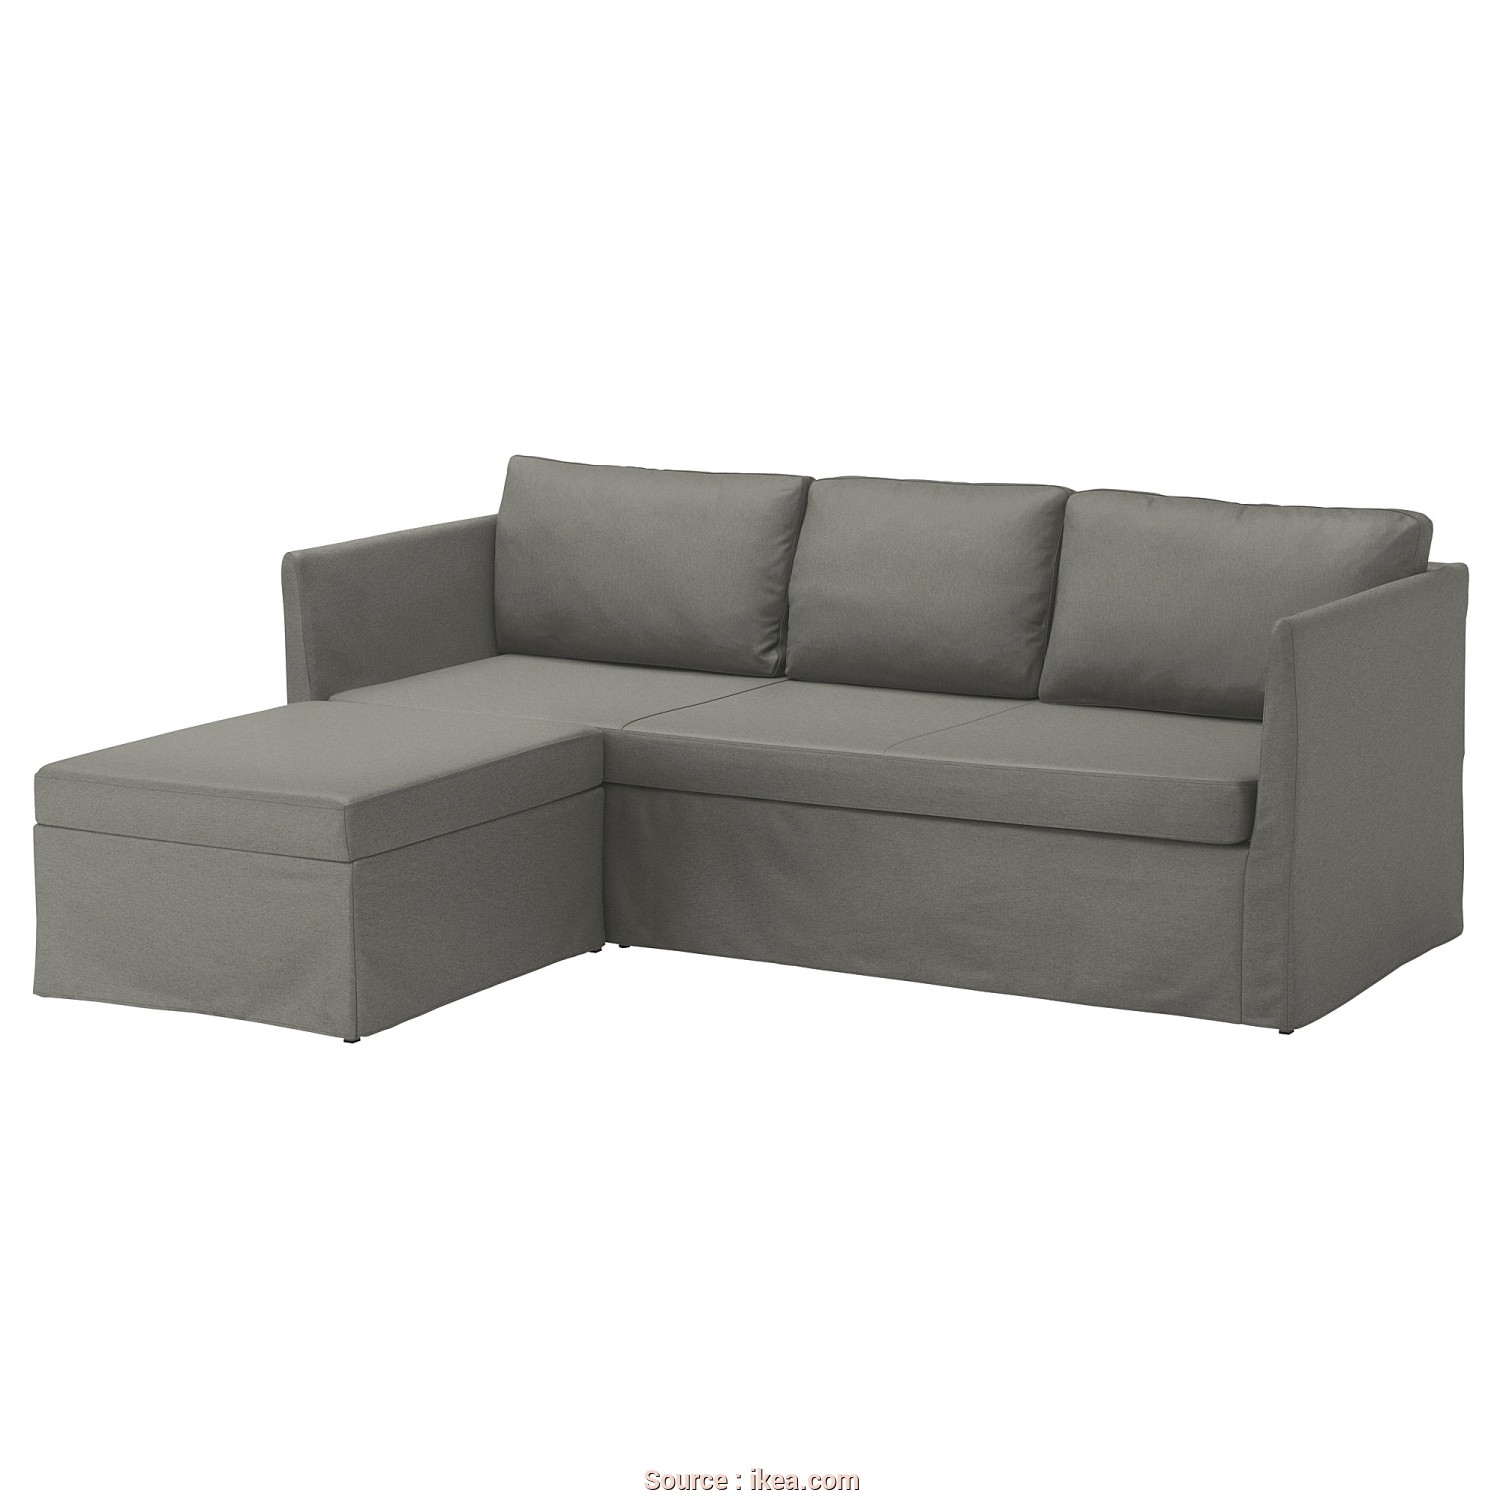 Canapé Convertible 3 Places Ikea Beddinge, Stupefacente IKEA BRÅTHULT Corner Sofa-Bed, Sit Comfortably Thanks To, Resilient Foam, Springy